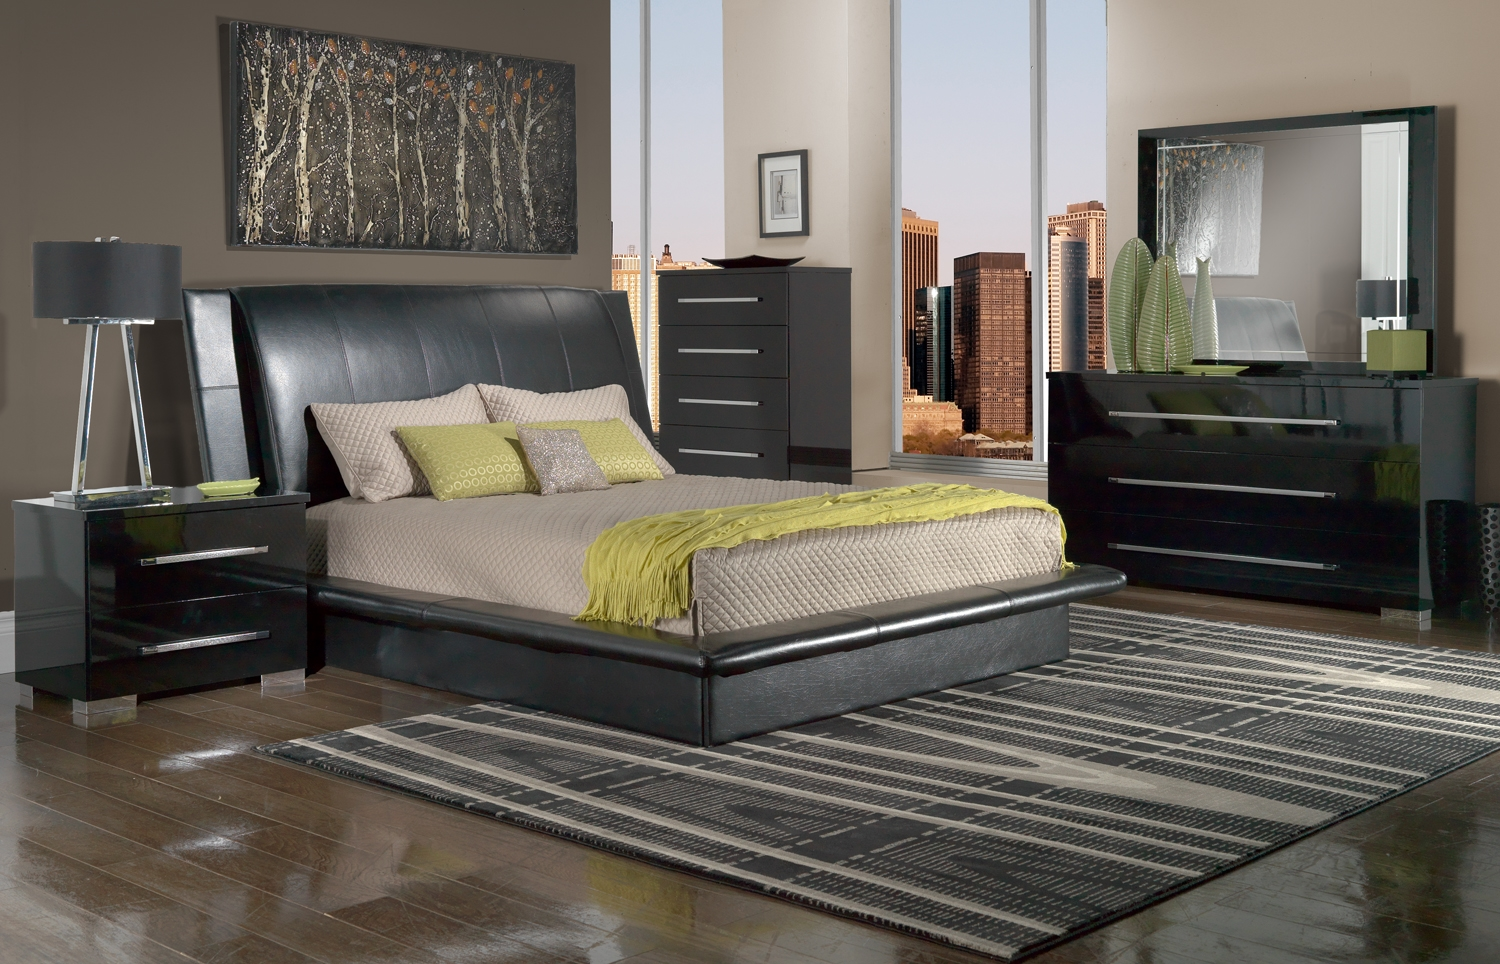 Leons bedroom furniture s furniture bedroom sets for Front door furniture sets